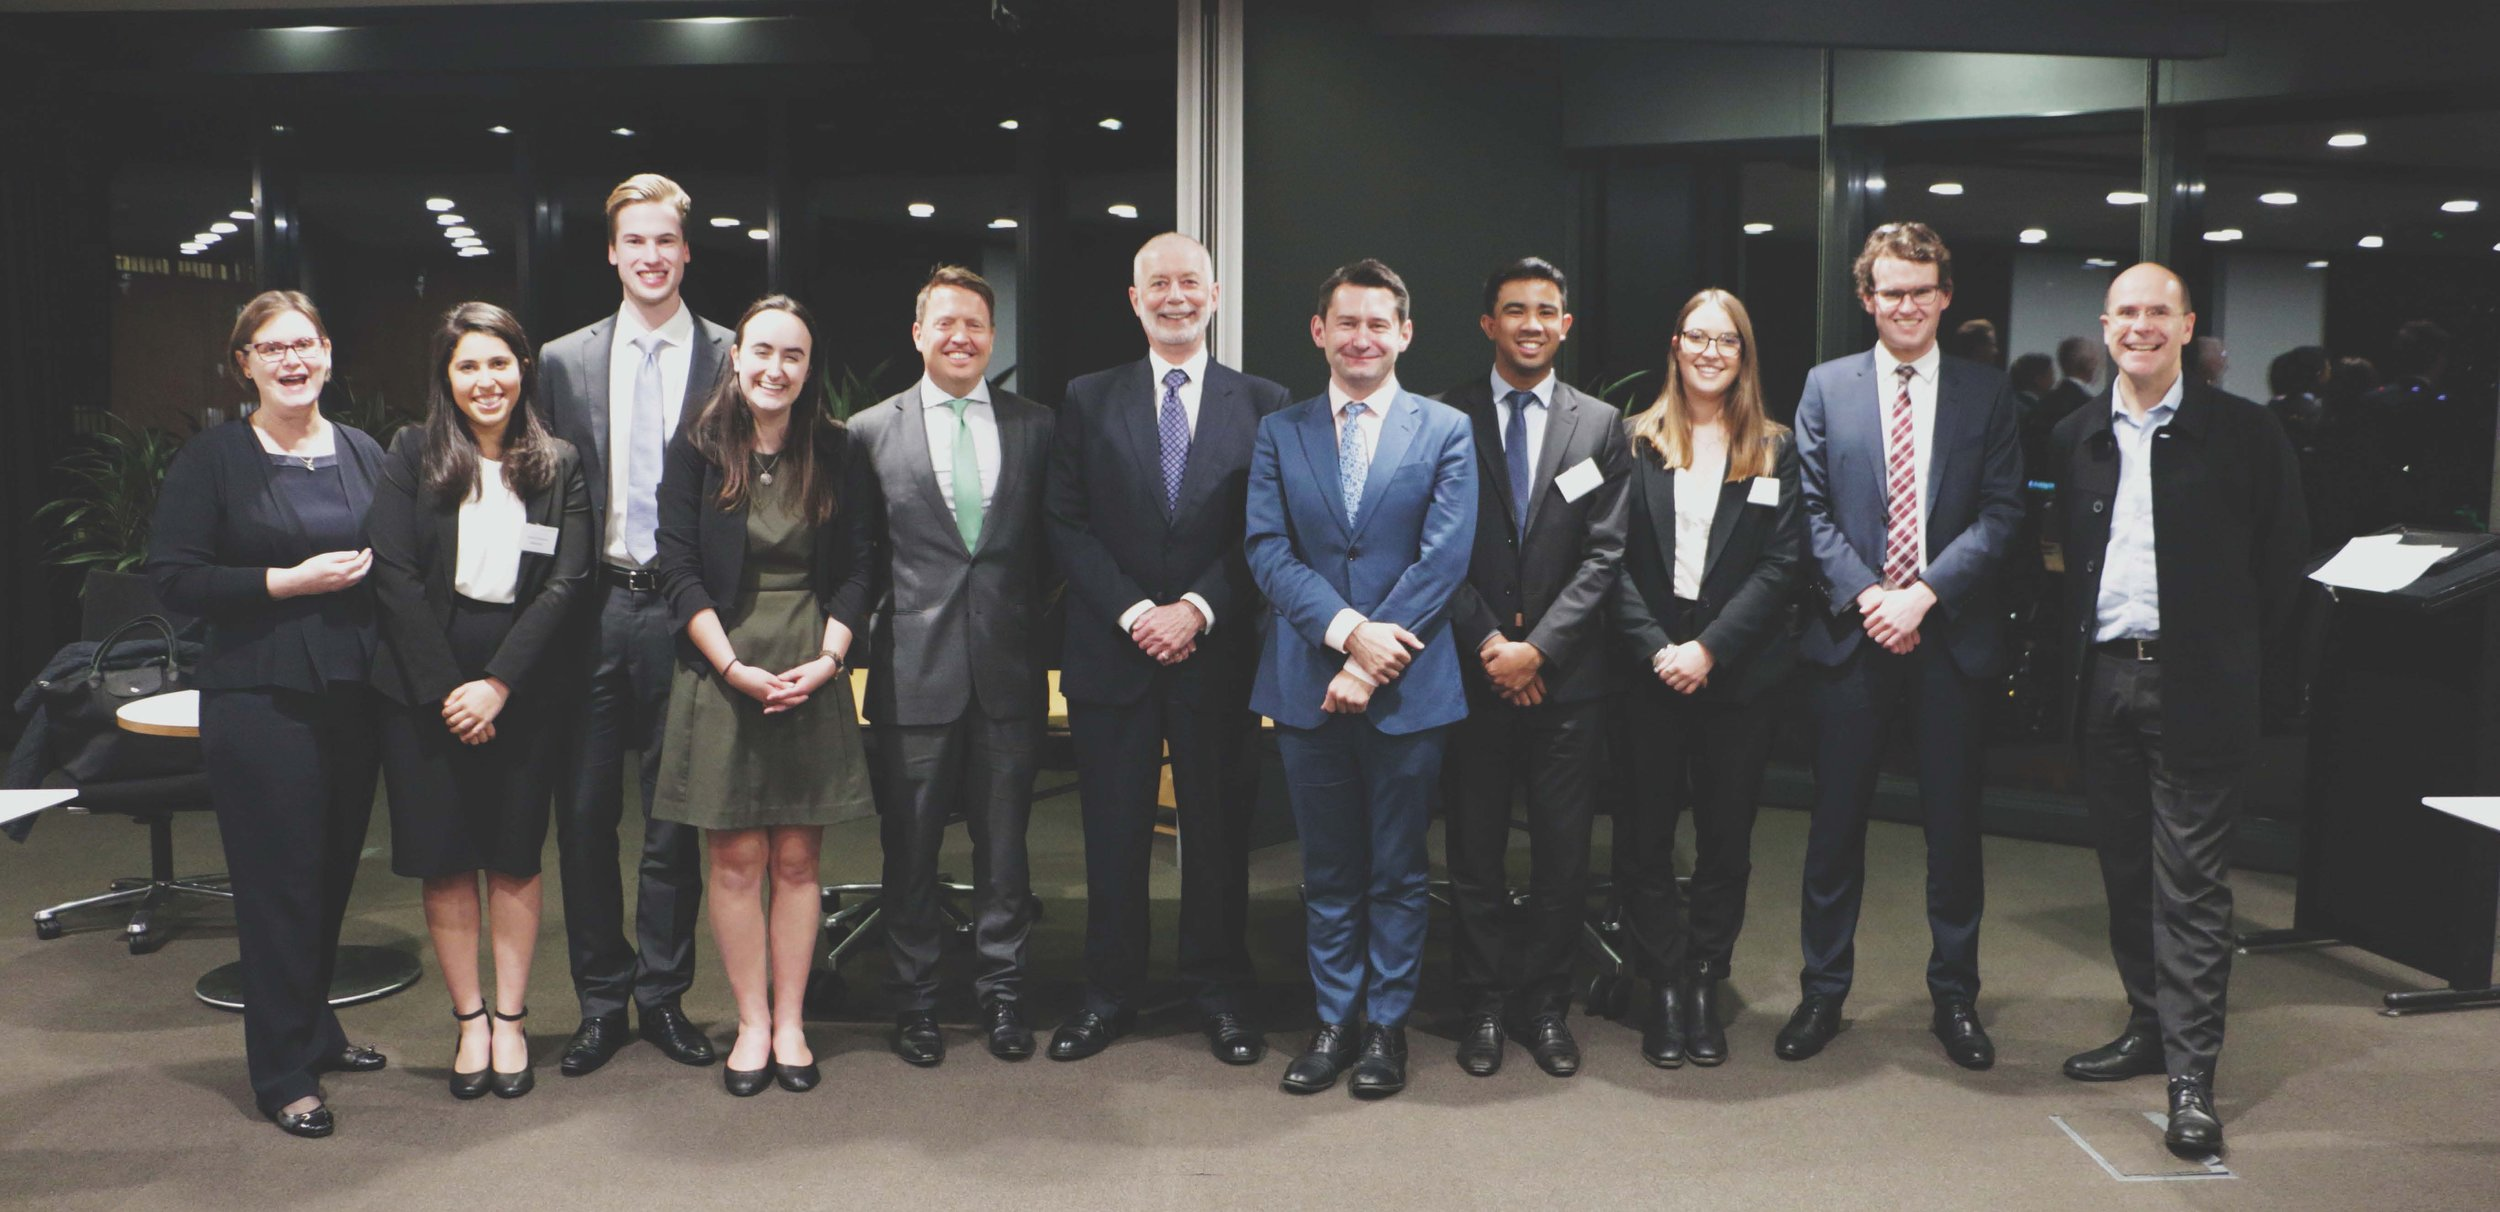 The grand finalists of the 2018 Allen & Overy Private Law Moot, from the University of Otago and Monash University, with The Honourable Justice Robert McDougall (New South Wales Supreme Court); James Lee (UNSW/King's College London); Michael Shepherd (Partner, Allen & Overy); Professor Simone Degeling (UNSW Law); and Professor George Williams (Dean, UNSW Law).